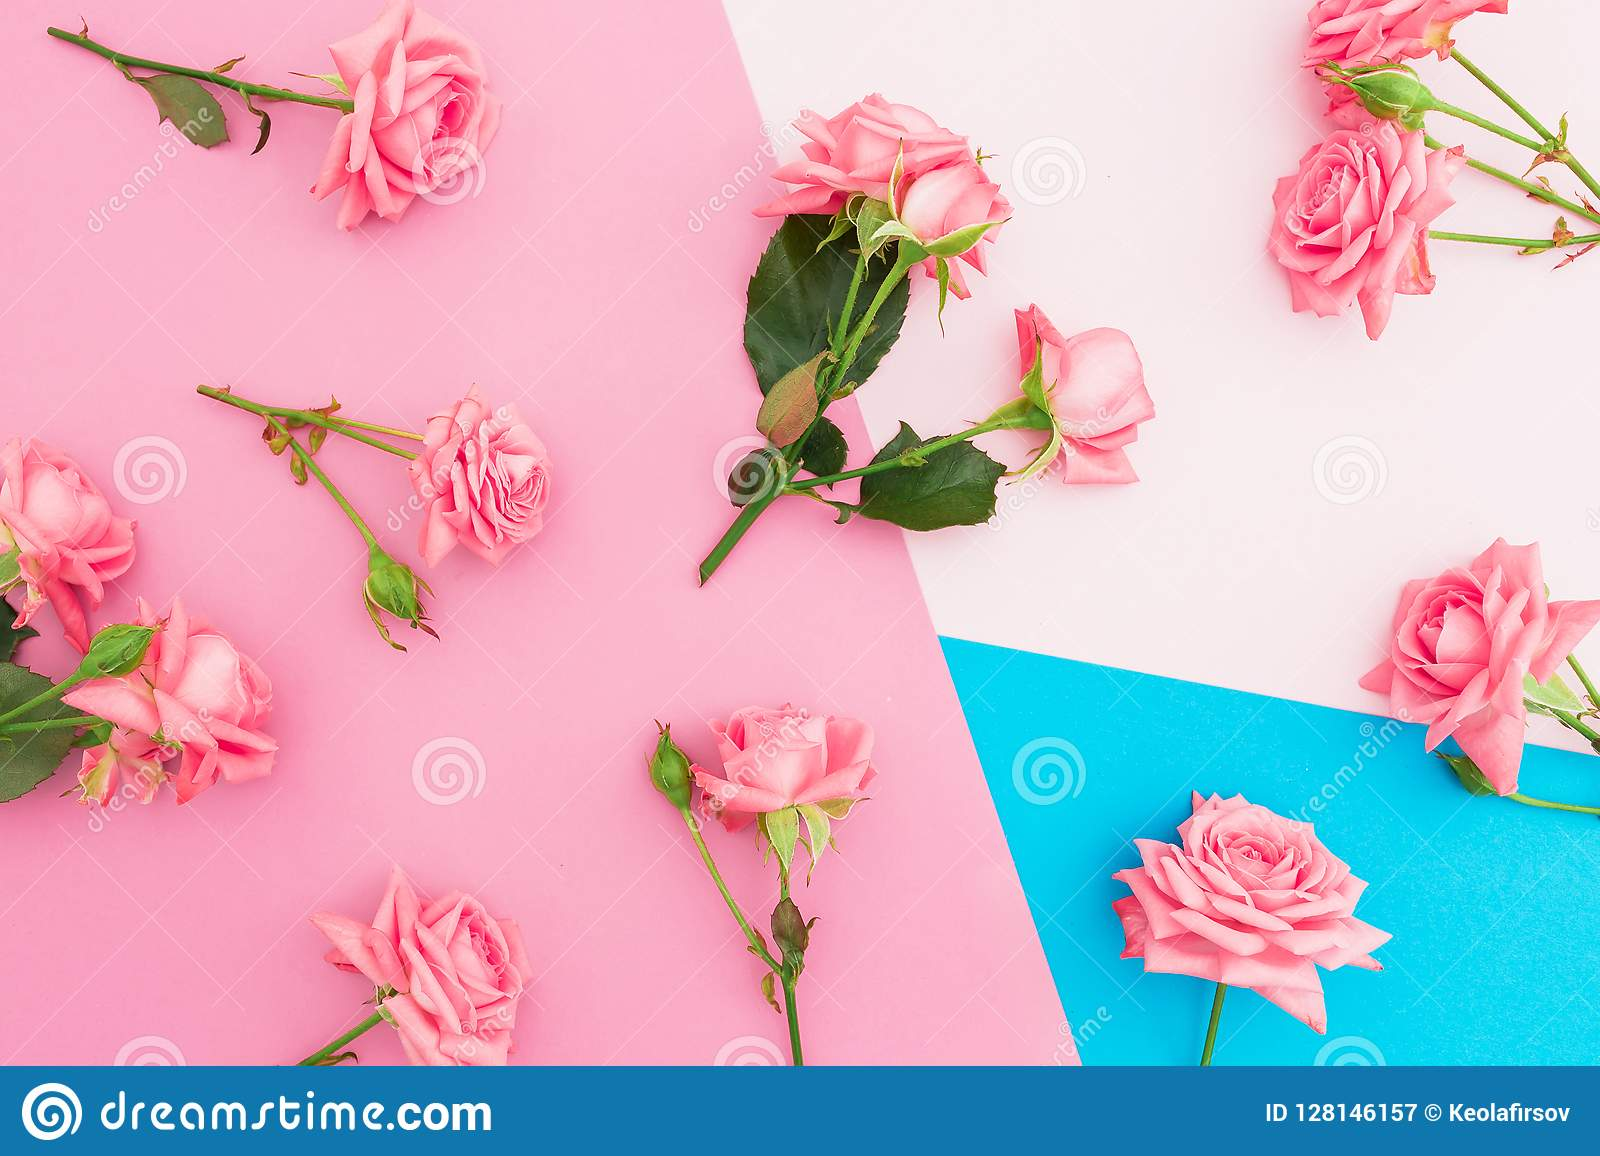 Blue And Pink Pastel Background With Pink Roses Flowers Flat Lay